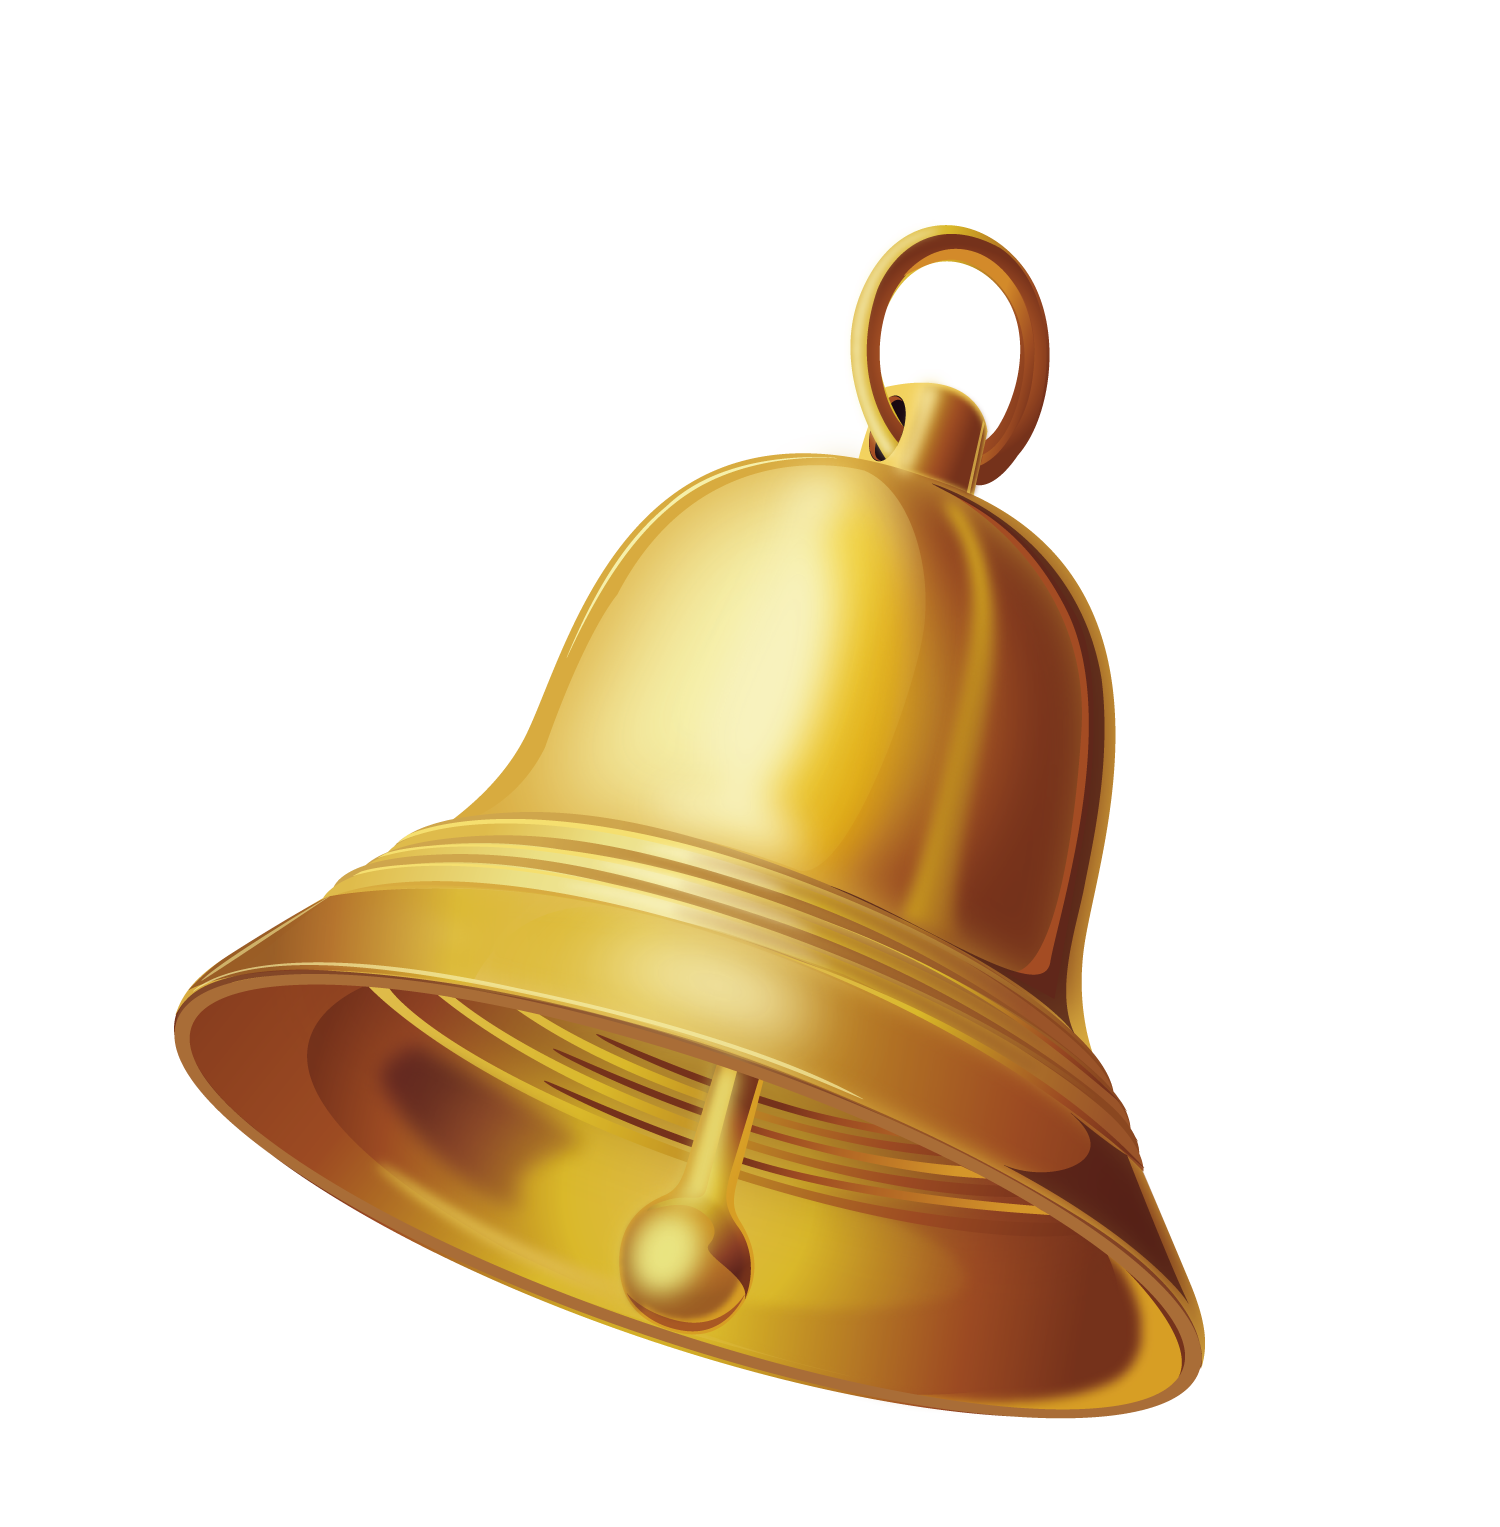 Bell PNG images free download.